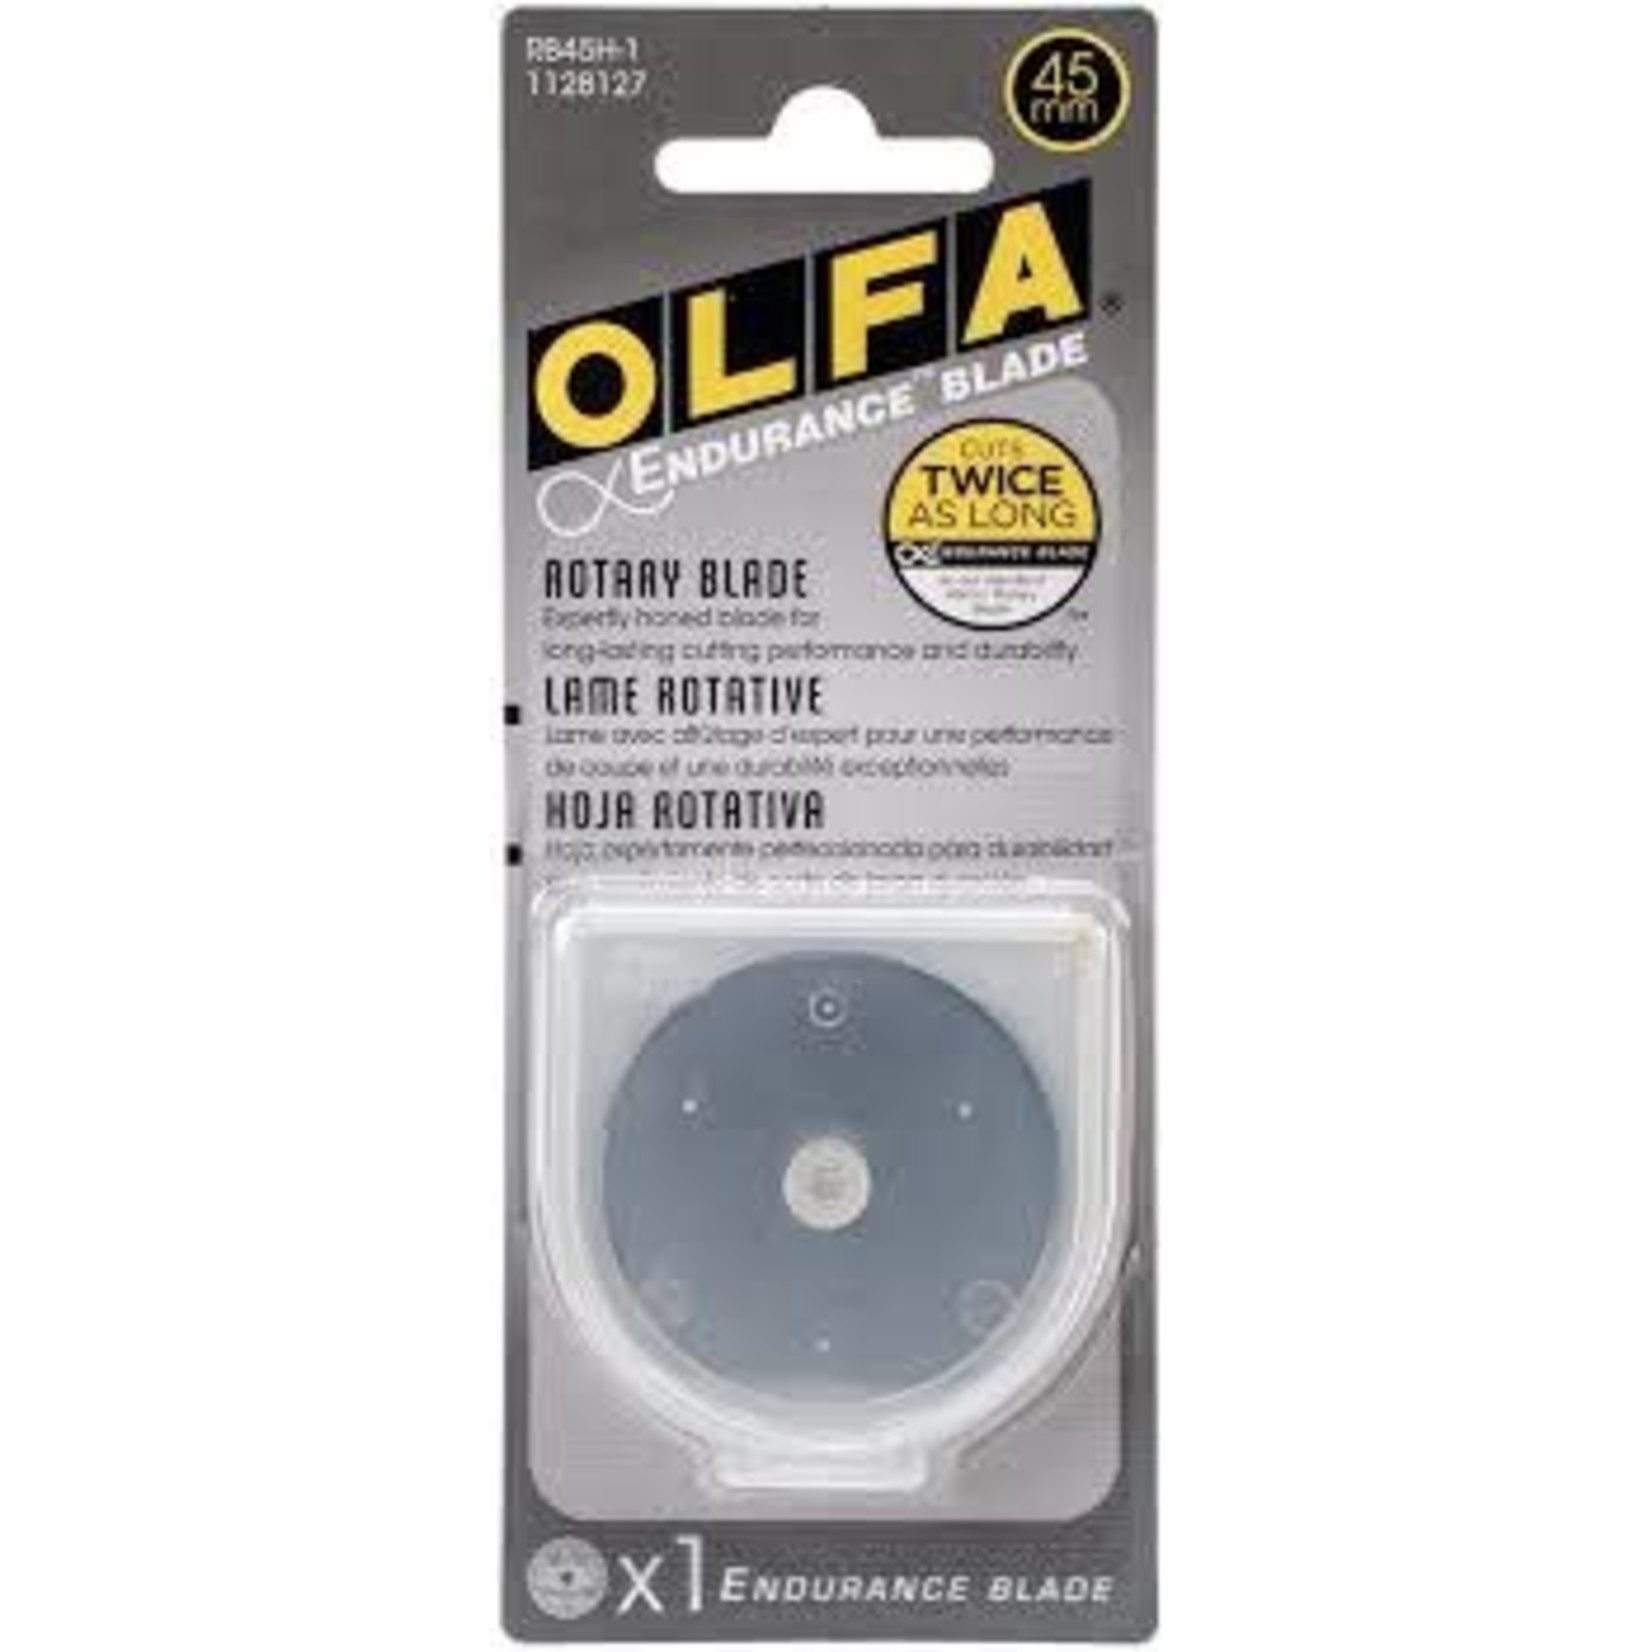 OLFA OLFA 45mm Endurance Blade (pack of 1)